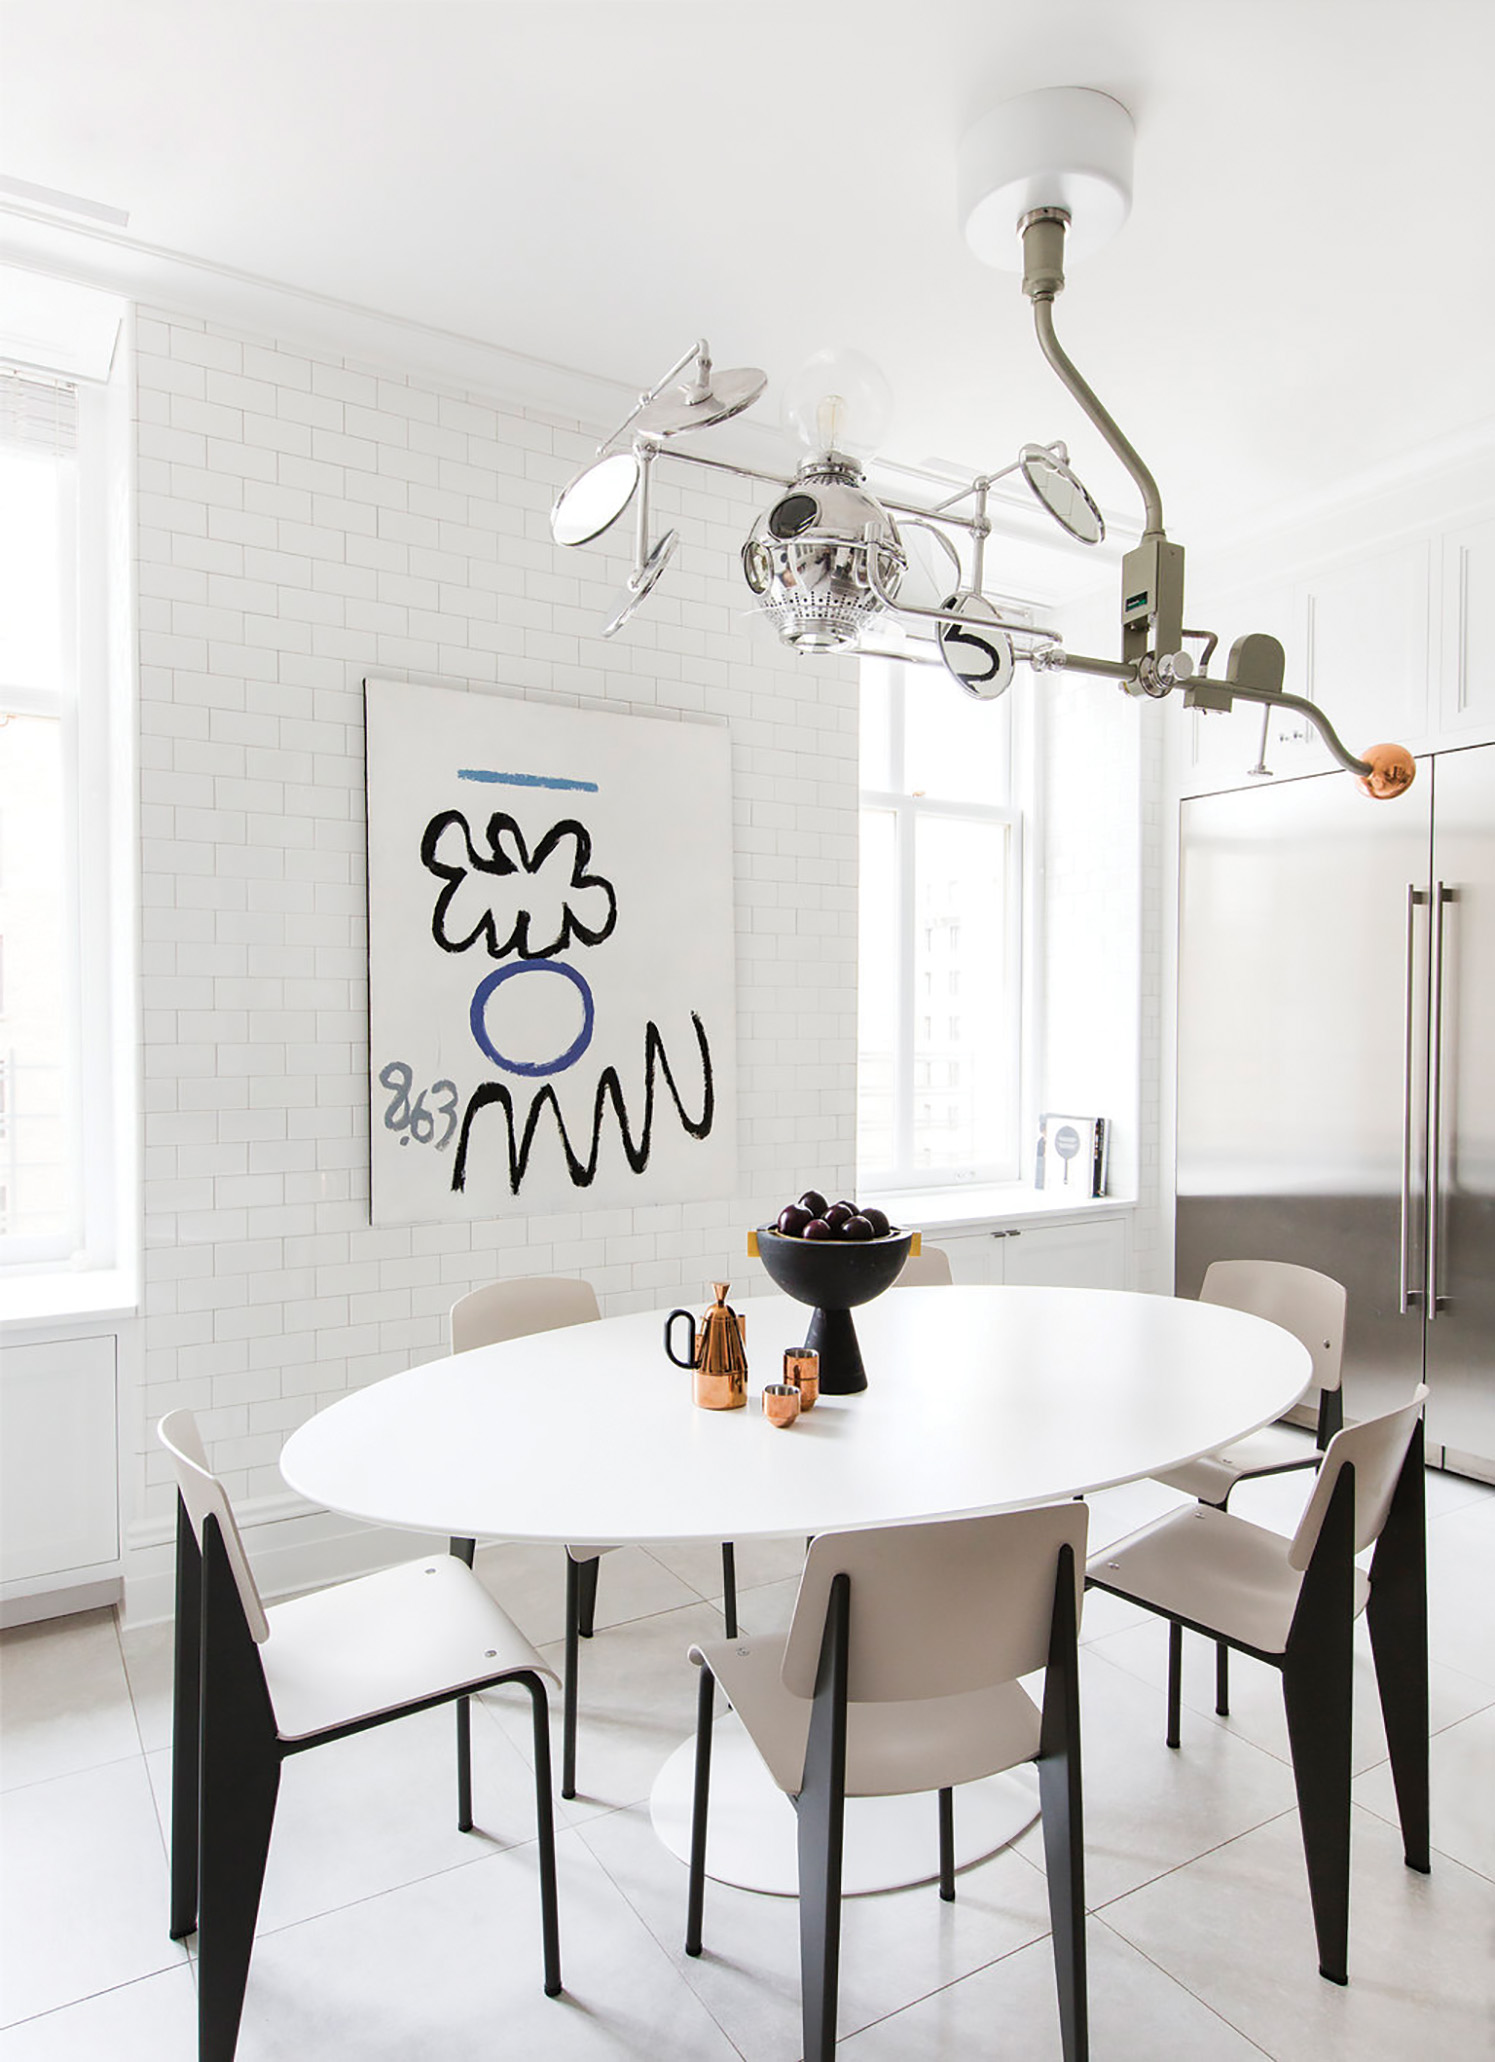 Vintage surgical light over Saarinen oval dining table. Prouve Standard chairs. Artwork by Raymond Hendler. Apparatus Censer dome and Tom Dixon Brew Coffeeware set. Photo: Tessa Neustadt.